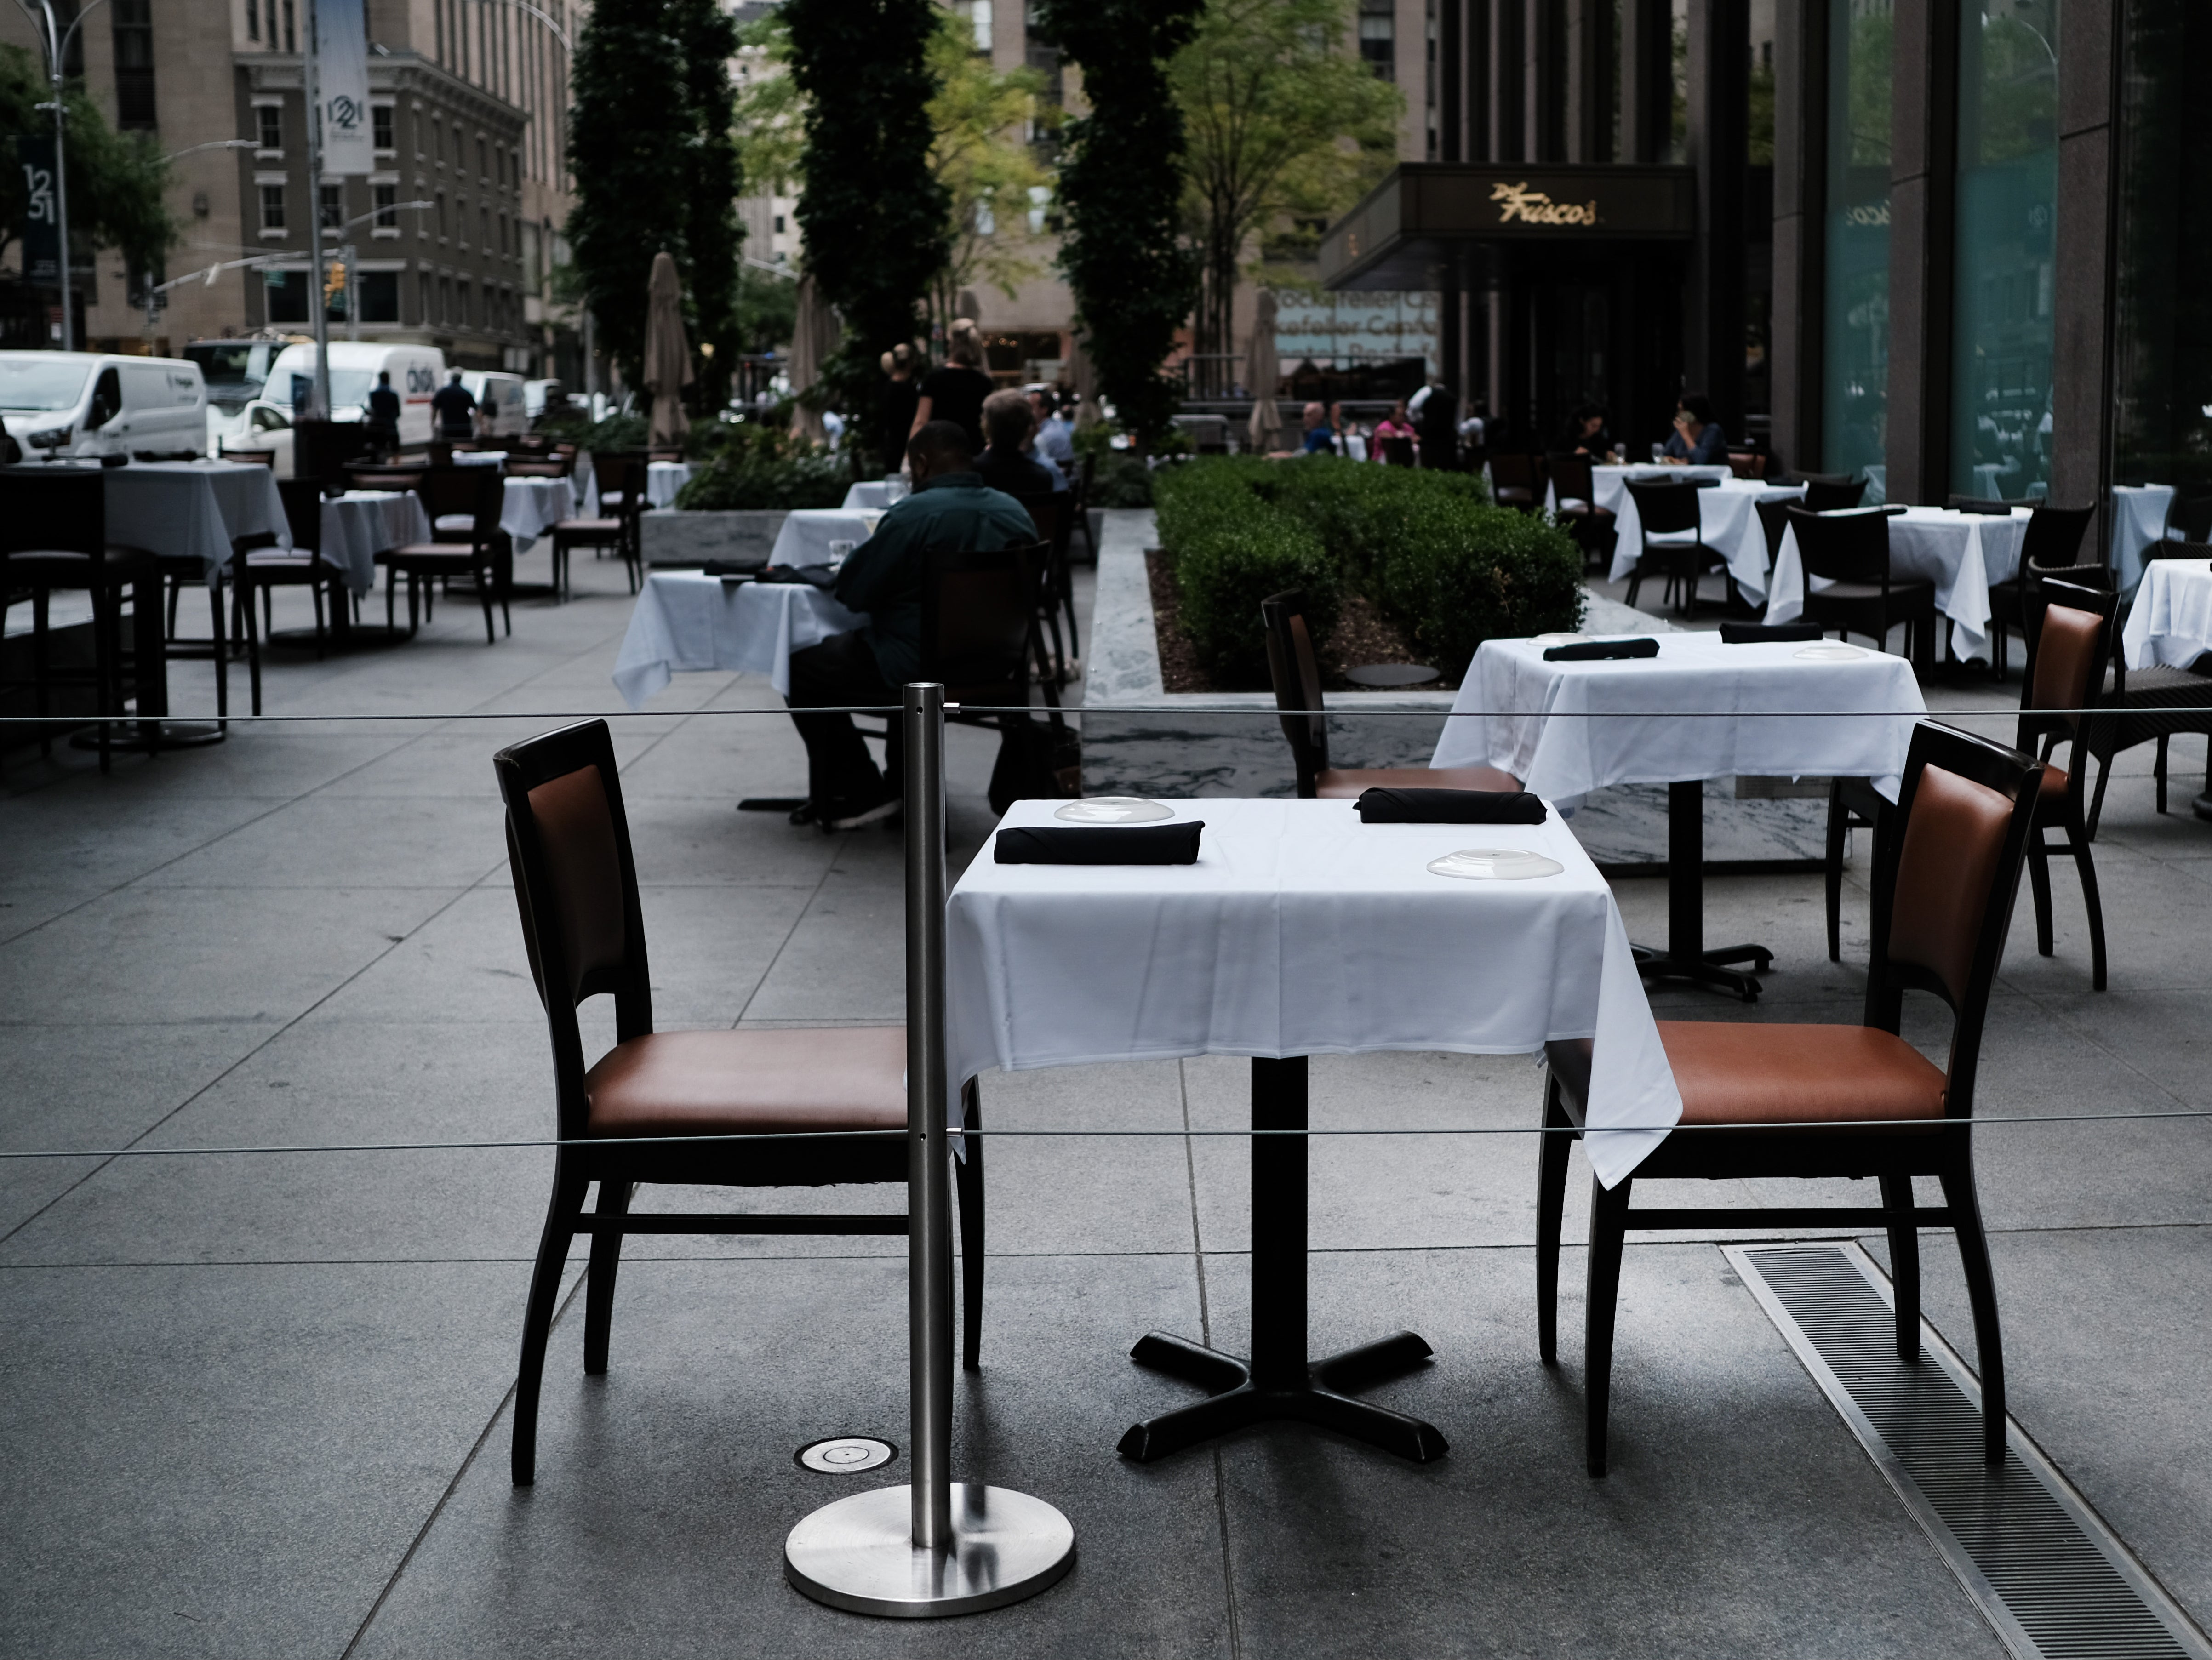 New York City's restaurant industry loses 140,000 jobs during pandemic - independent